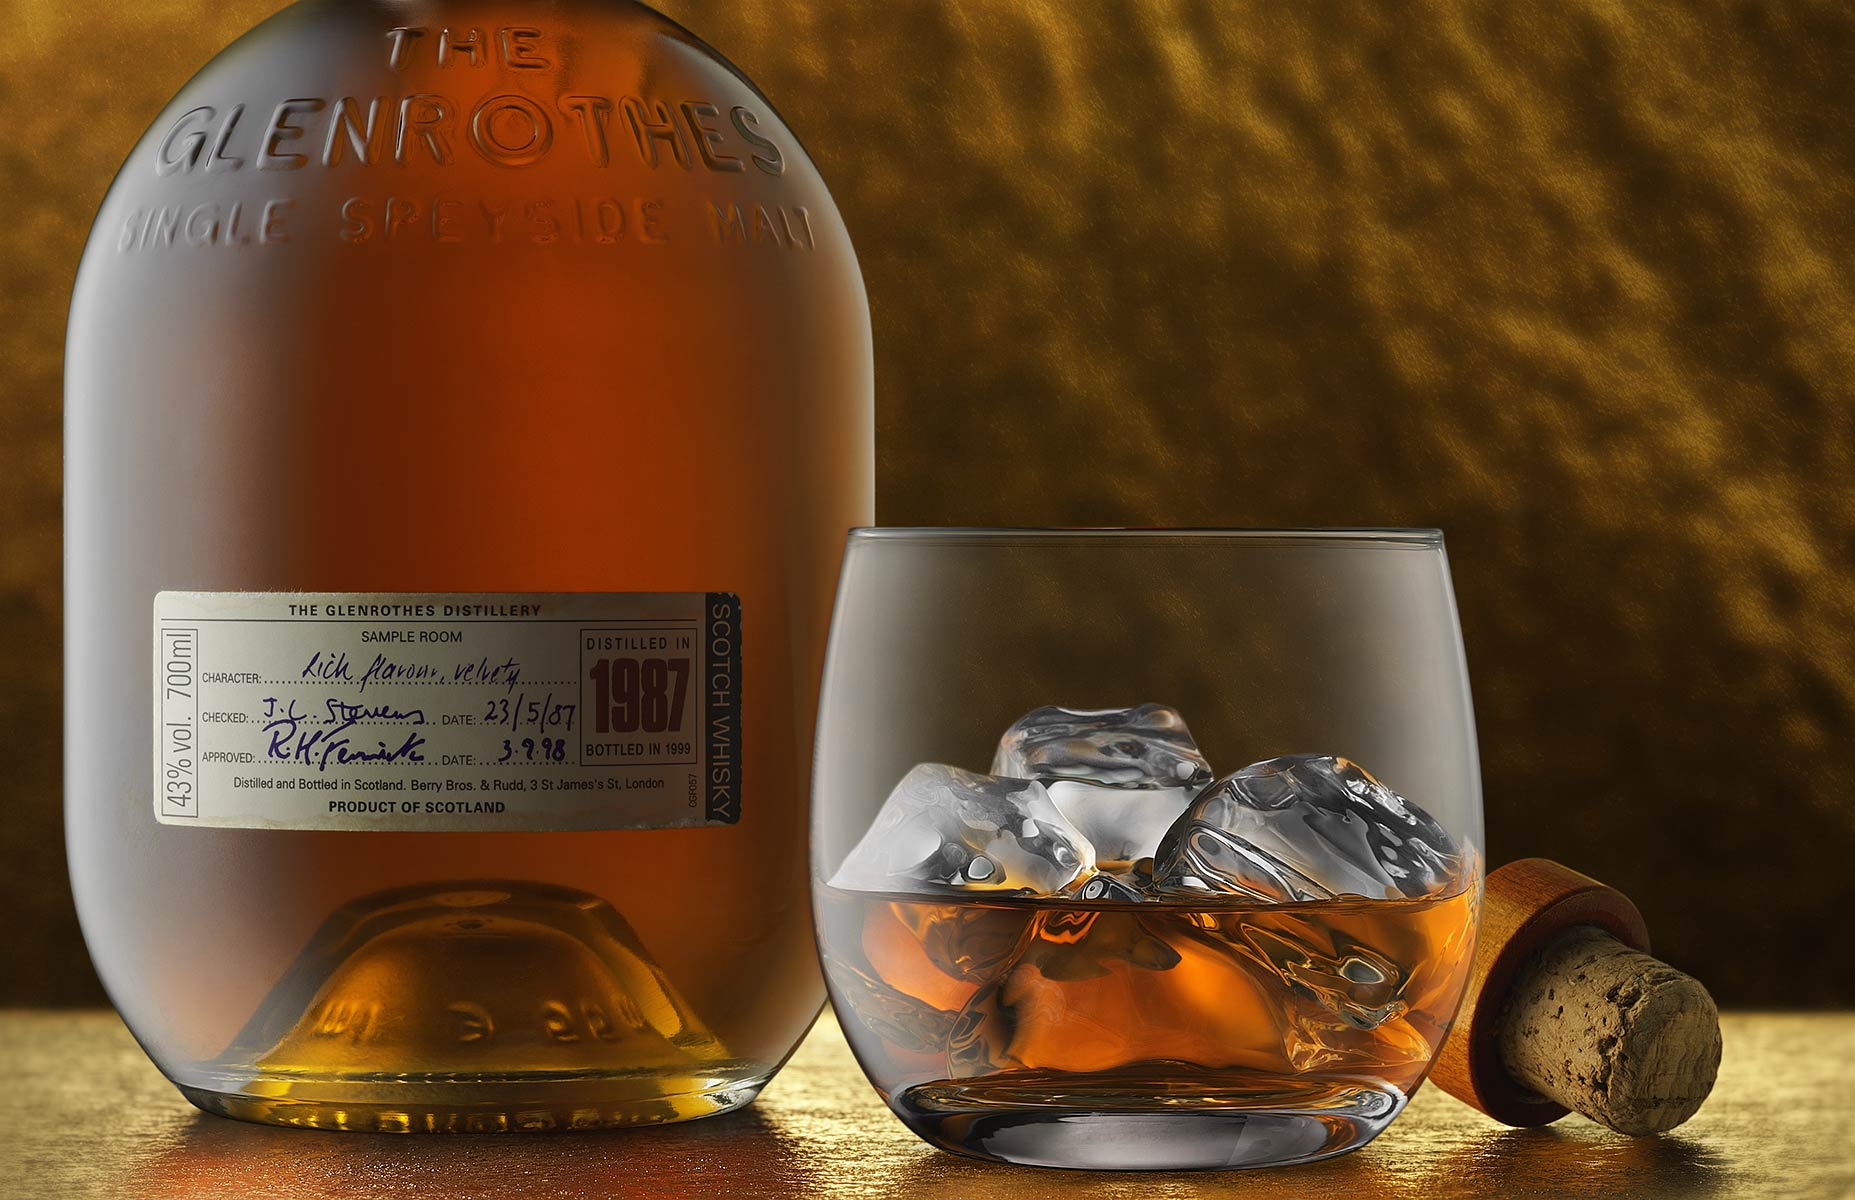 Shot with the camera angle at 0º to the bottle and cropped in a horizontal aspect. The cork bottle stopper is slightly obsured by a lowball glass half filled with ice and Scotch whiskey. The composition is on a pebbly and slightly reflective gold surface and in front of the textural gold back wall. The light is soft and from two directions, the main light is softly from the left side and a top light creates an interesting glow to the gold surface highlighting the whiskey and and adding depth to the subject's reflections in this still life.